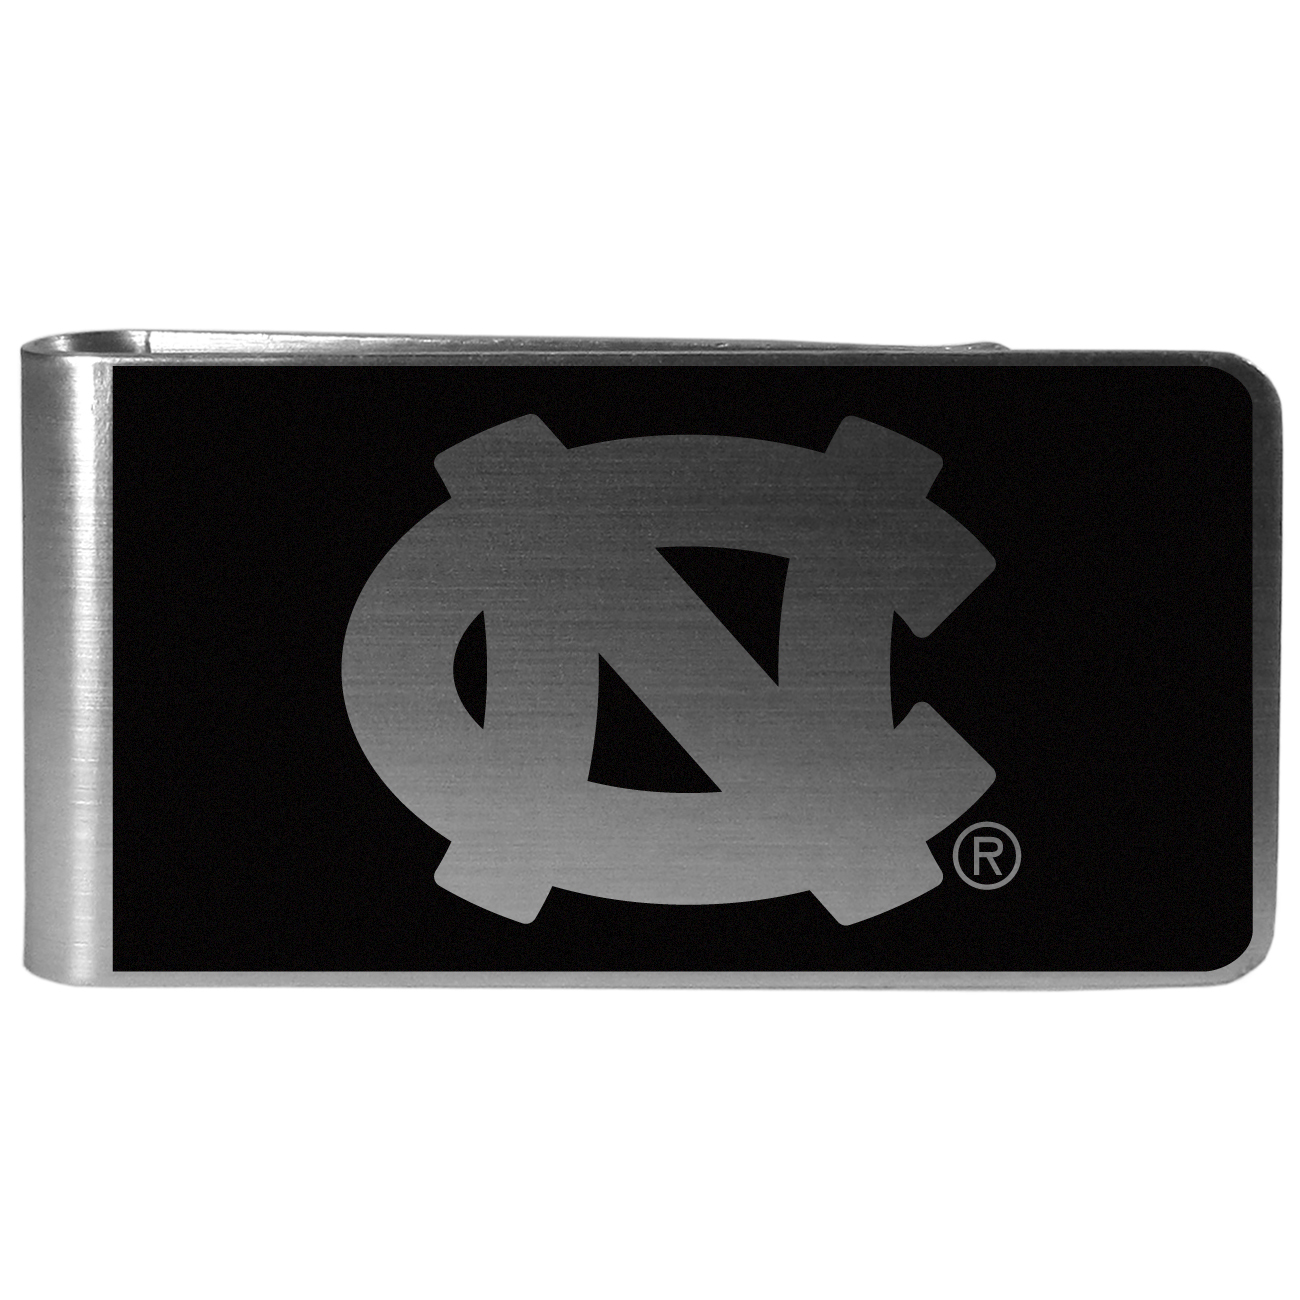 N. Carolina Tar Heels Black and Steel Money Clip - Our monochromatic steel money clips have a classic style and superior quality. The strong, steel clip has a black overlay of the N. Carolina Tar Heels logo over the brushed metal finish creating a stylish men's fashion accessory that would make any fan proud.